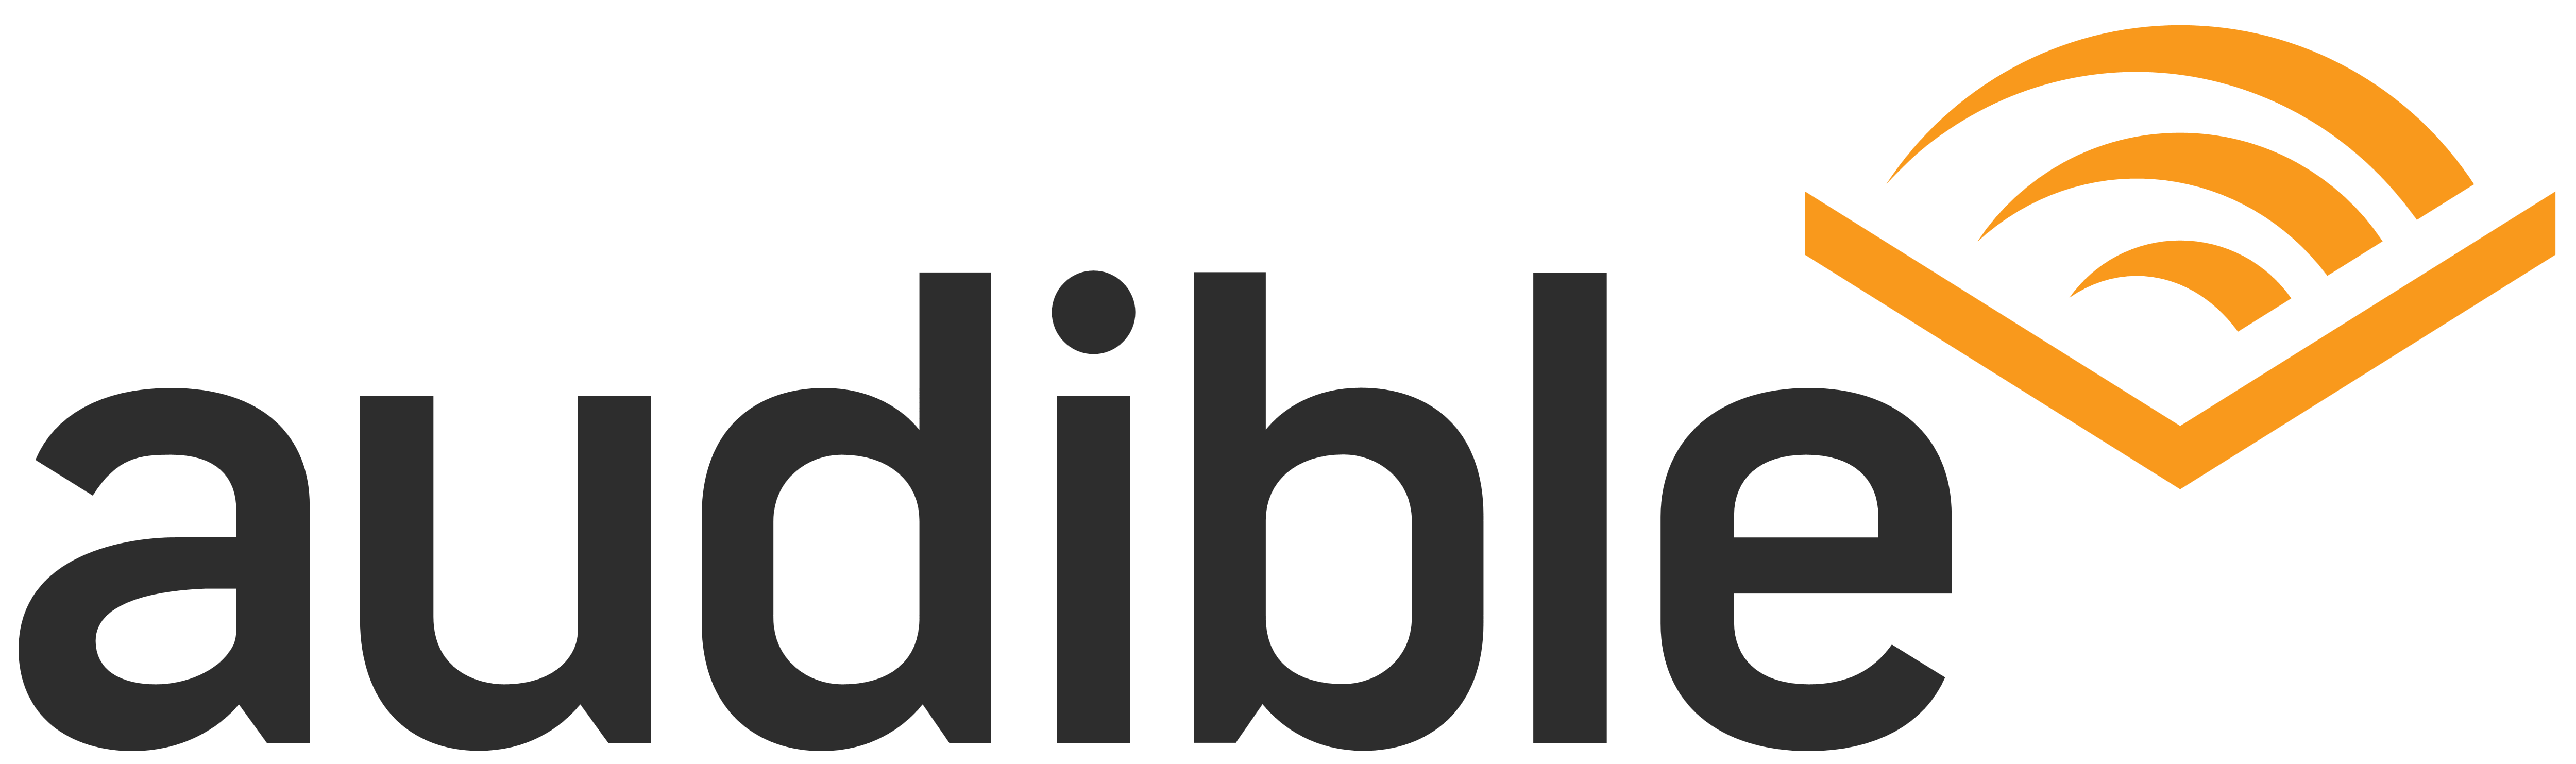 New and Existing Members: 3-Months of Audible Membership w/ 4 Credits $14.95